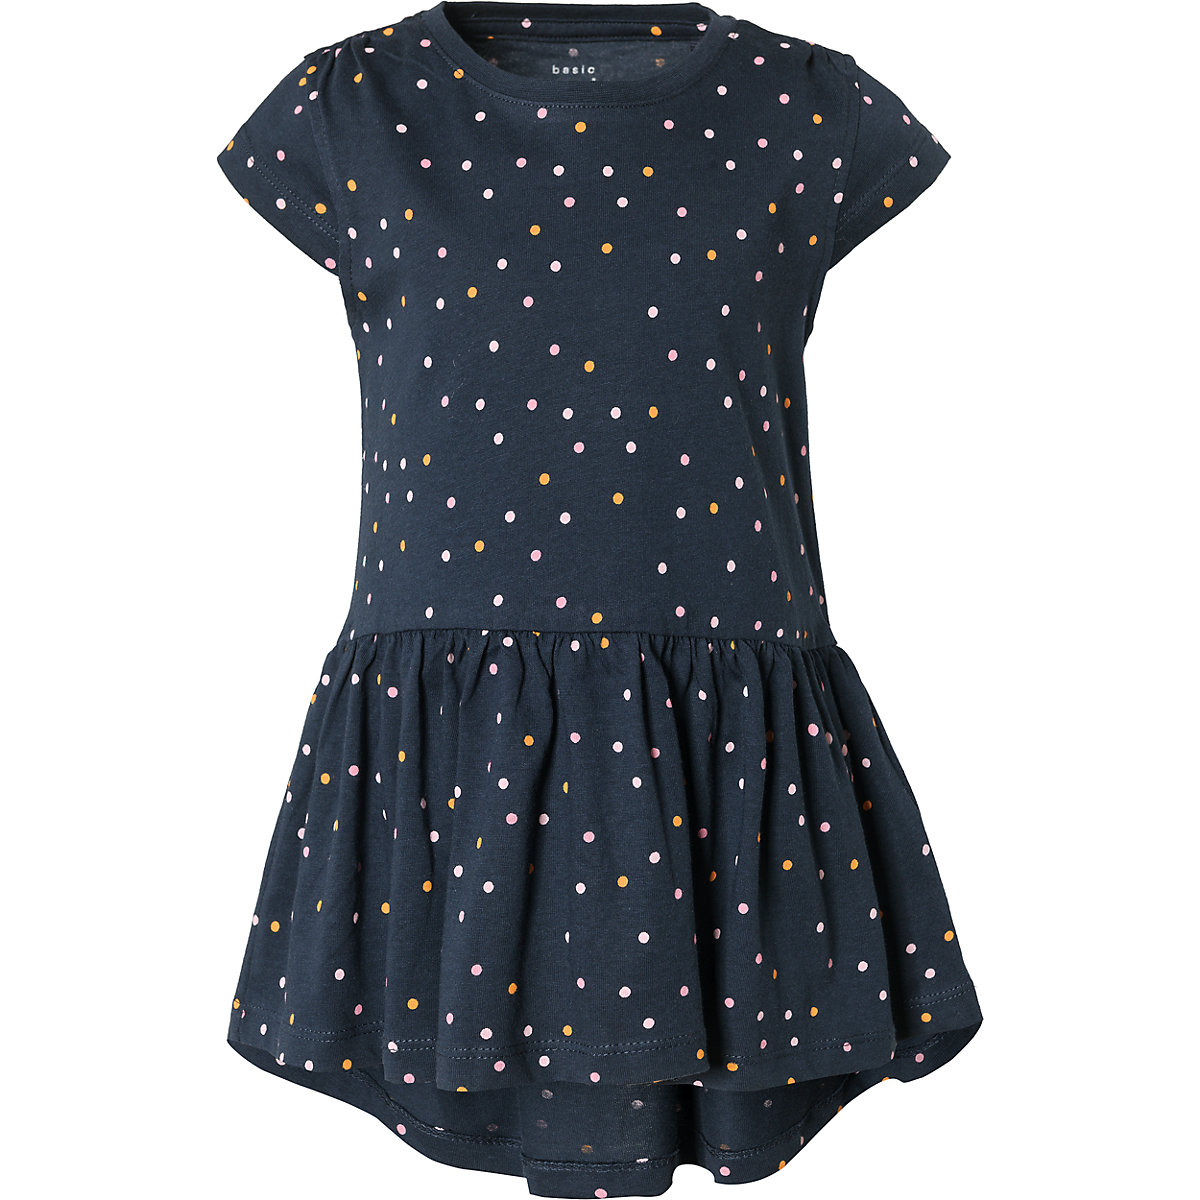 NAME IT Dresses 10626568 Dress girl children checkered pattern collar fitted silhouette sequins Cotton Casual Blue Short Sleeve stylish short sleeve sequin embellished star pattern dress for women